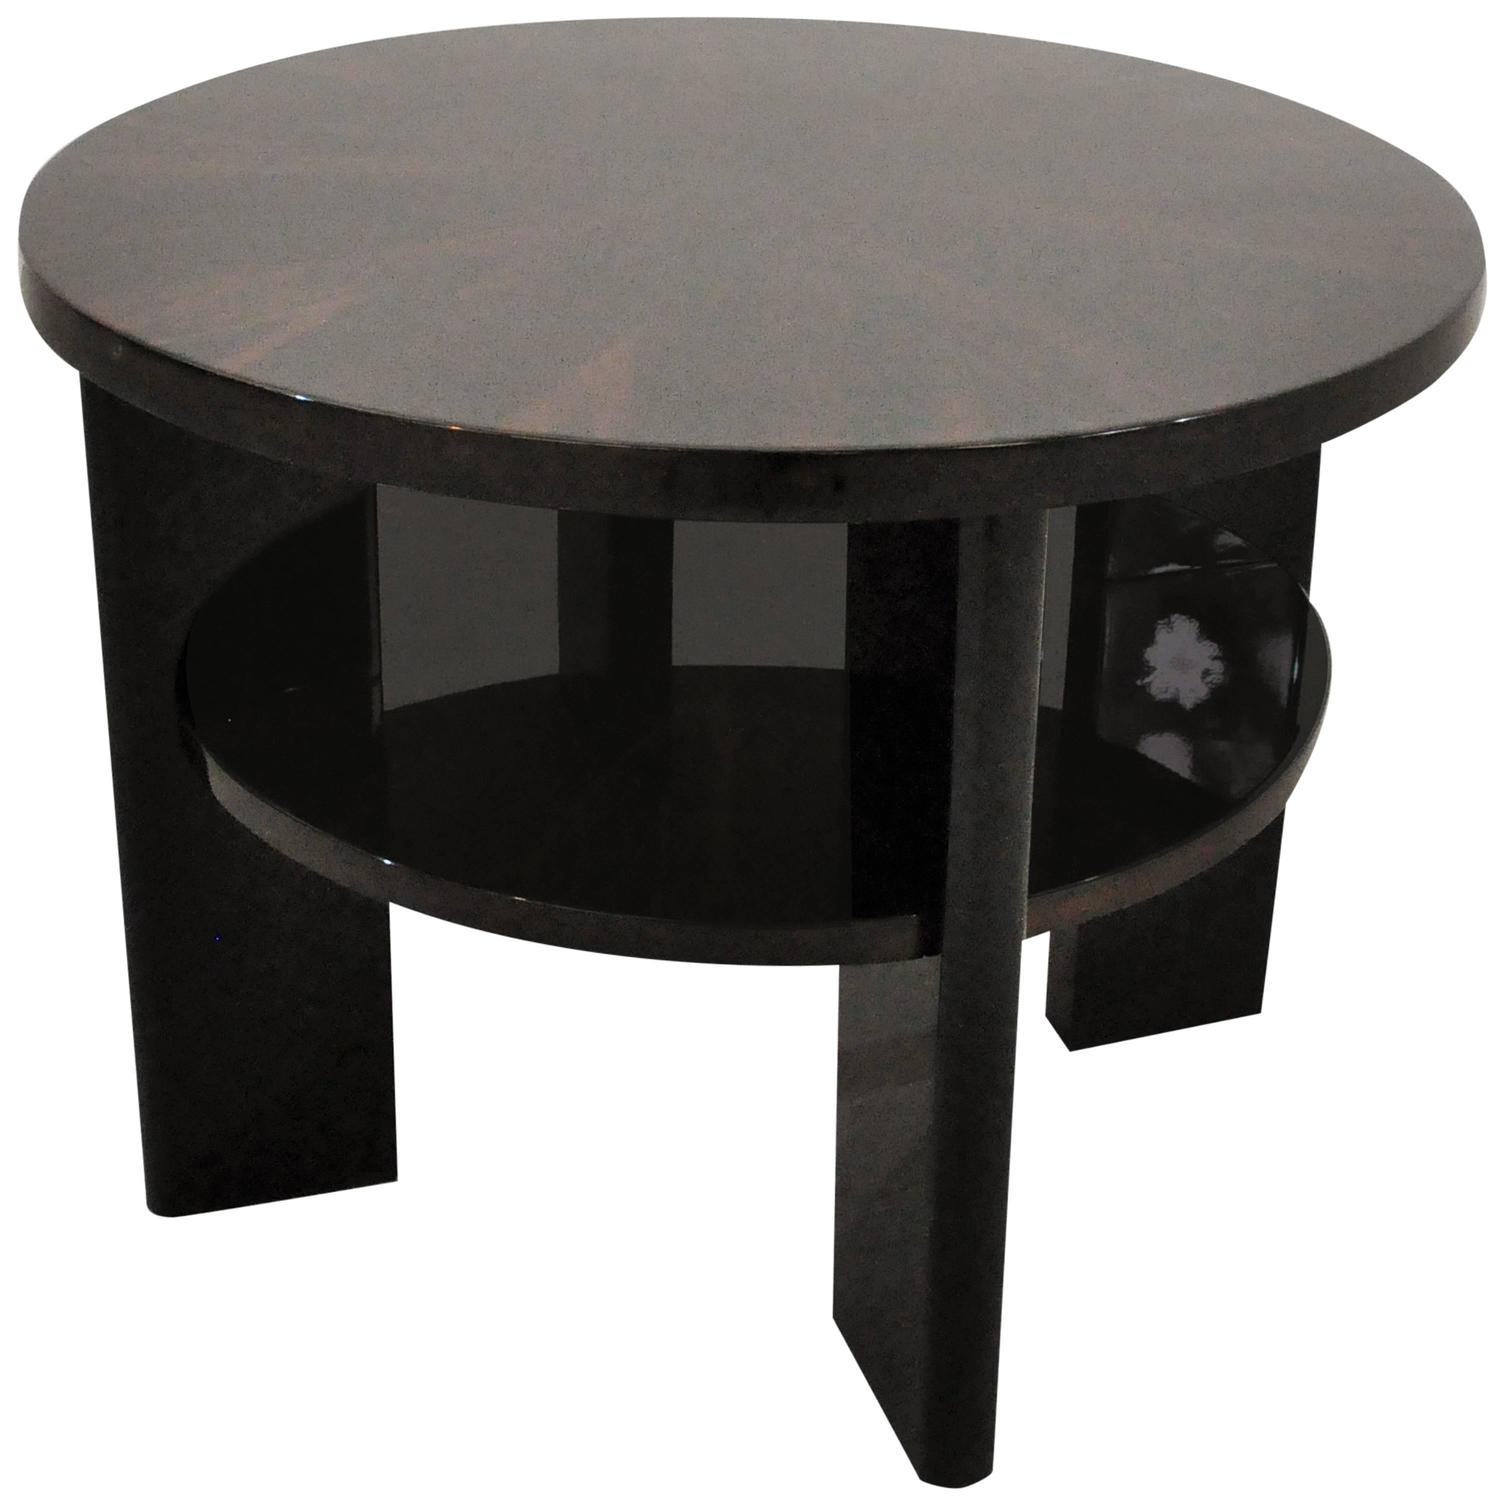 french art deco macassar side table paris 1930s at 1stdibs. Black Bedroom Furniture Sets. Home Design Ideas